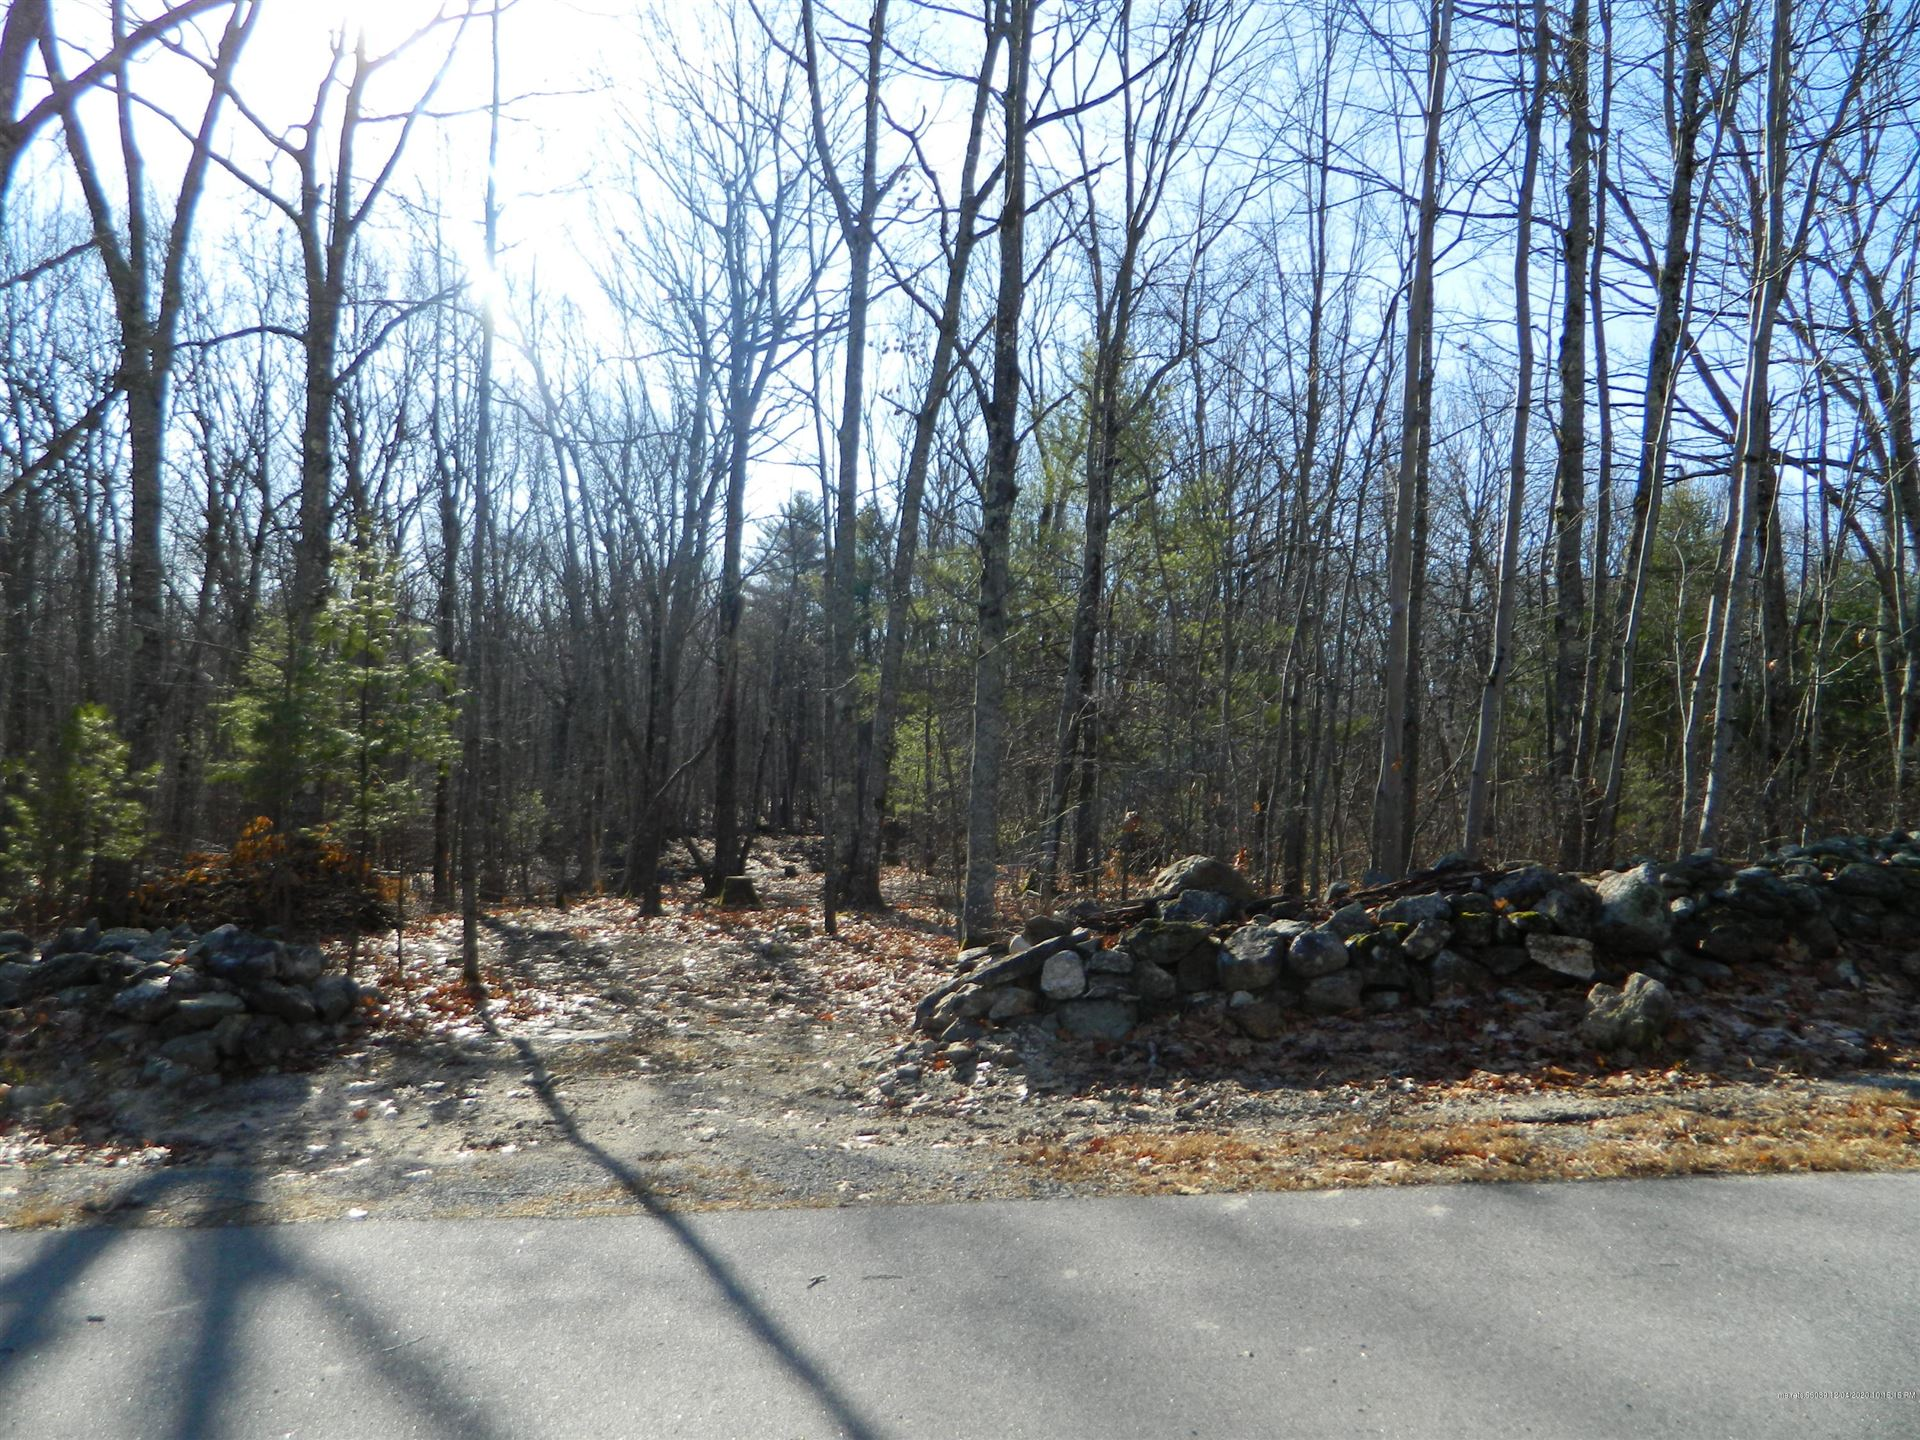 Photo of 0 County Road, Shapleigh, ME 04076 (MLS # 1477552)